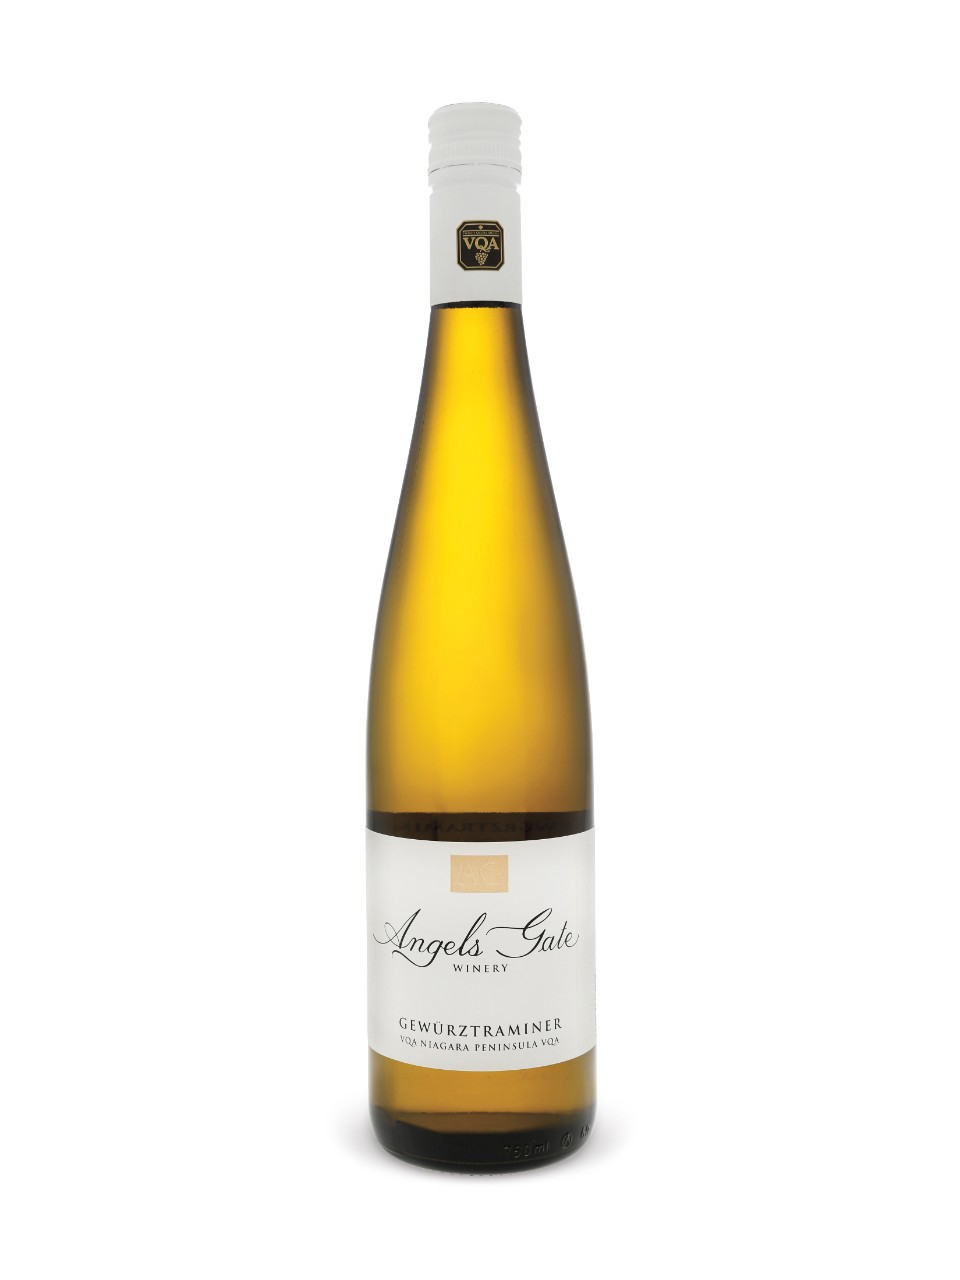 Image for Angels Gate Gewurztraminer VQA from LCBO